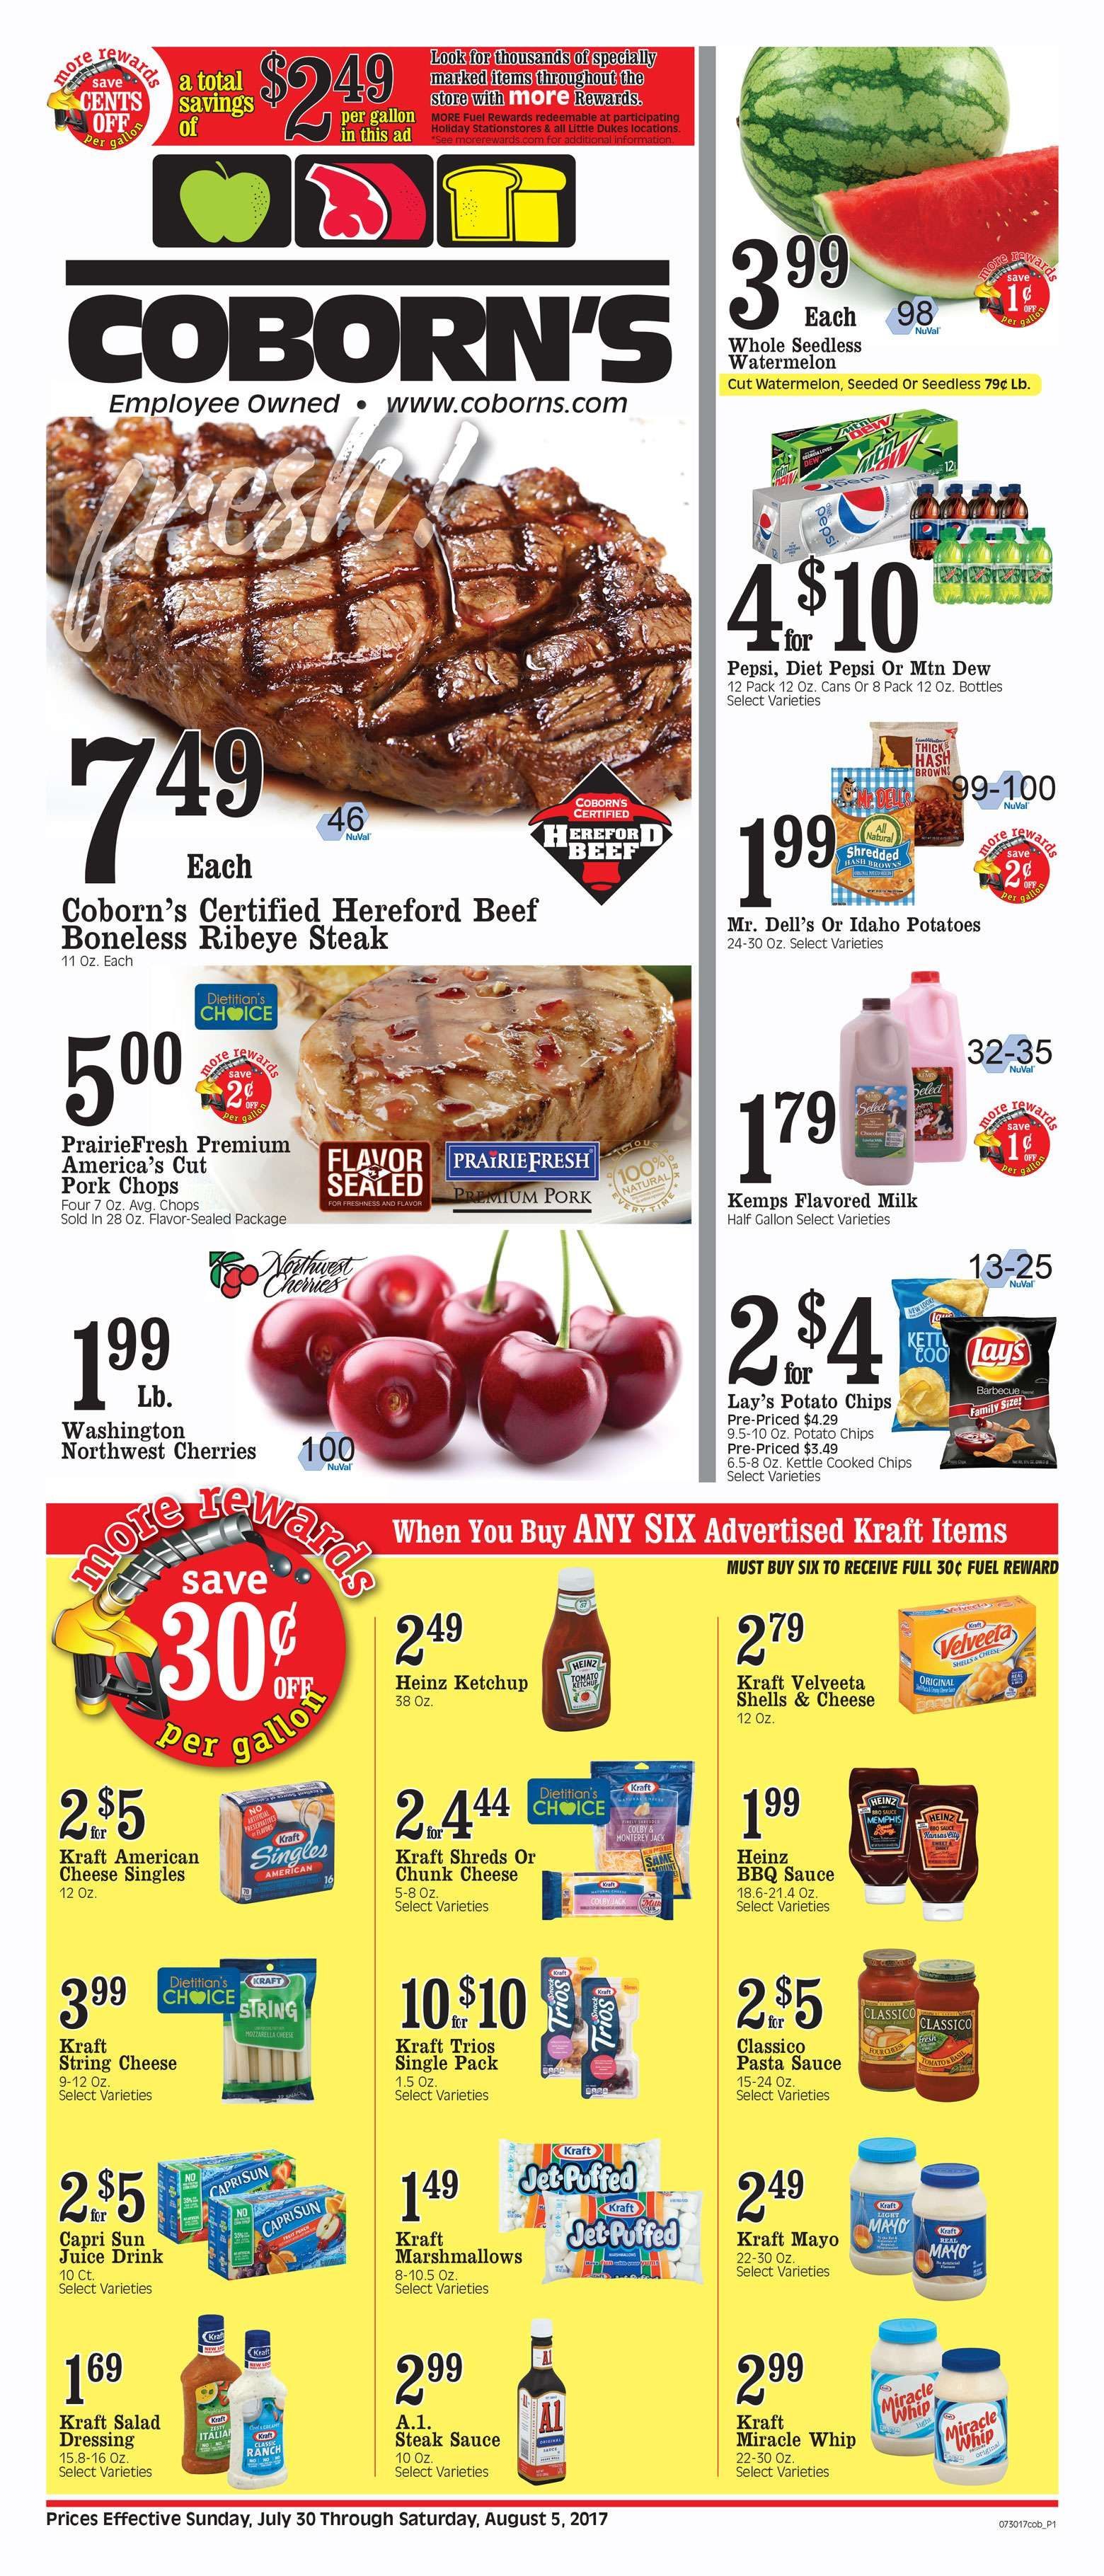 Coborn's Weekly Ad July 30 - August 5, 2017 - http://www.olcatalog.com/coborns/coborns-weekly-ad.html